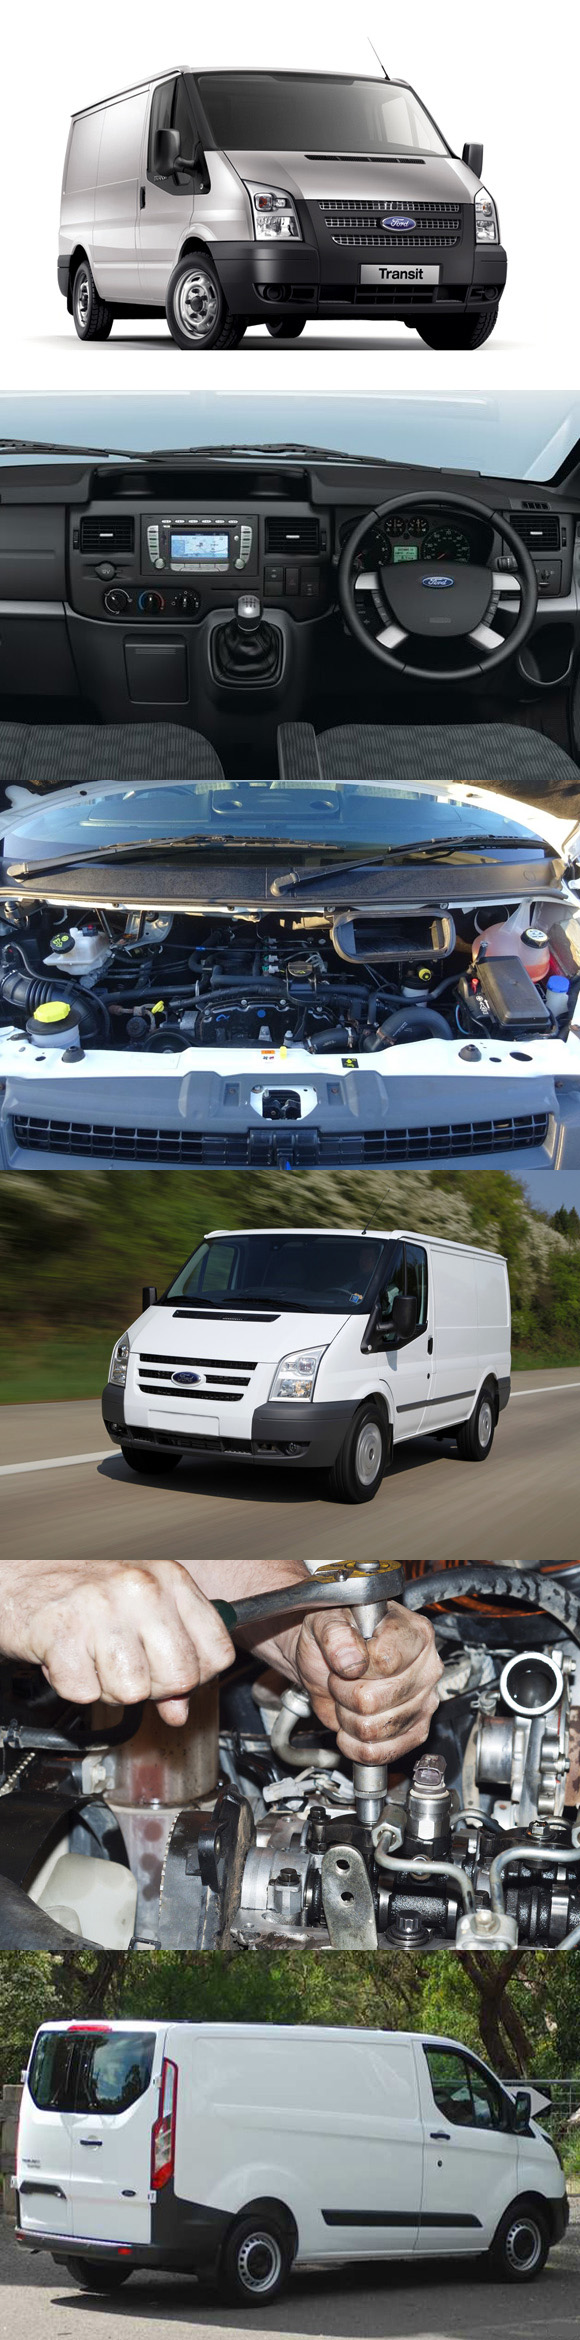 The Best Ford Transit Mk7engine For More Read Www Fordtransitengines Co Uk Blog Best Ford Transit Mk7 Engine Ford Transit Car Ford Ford